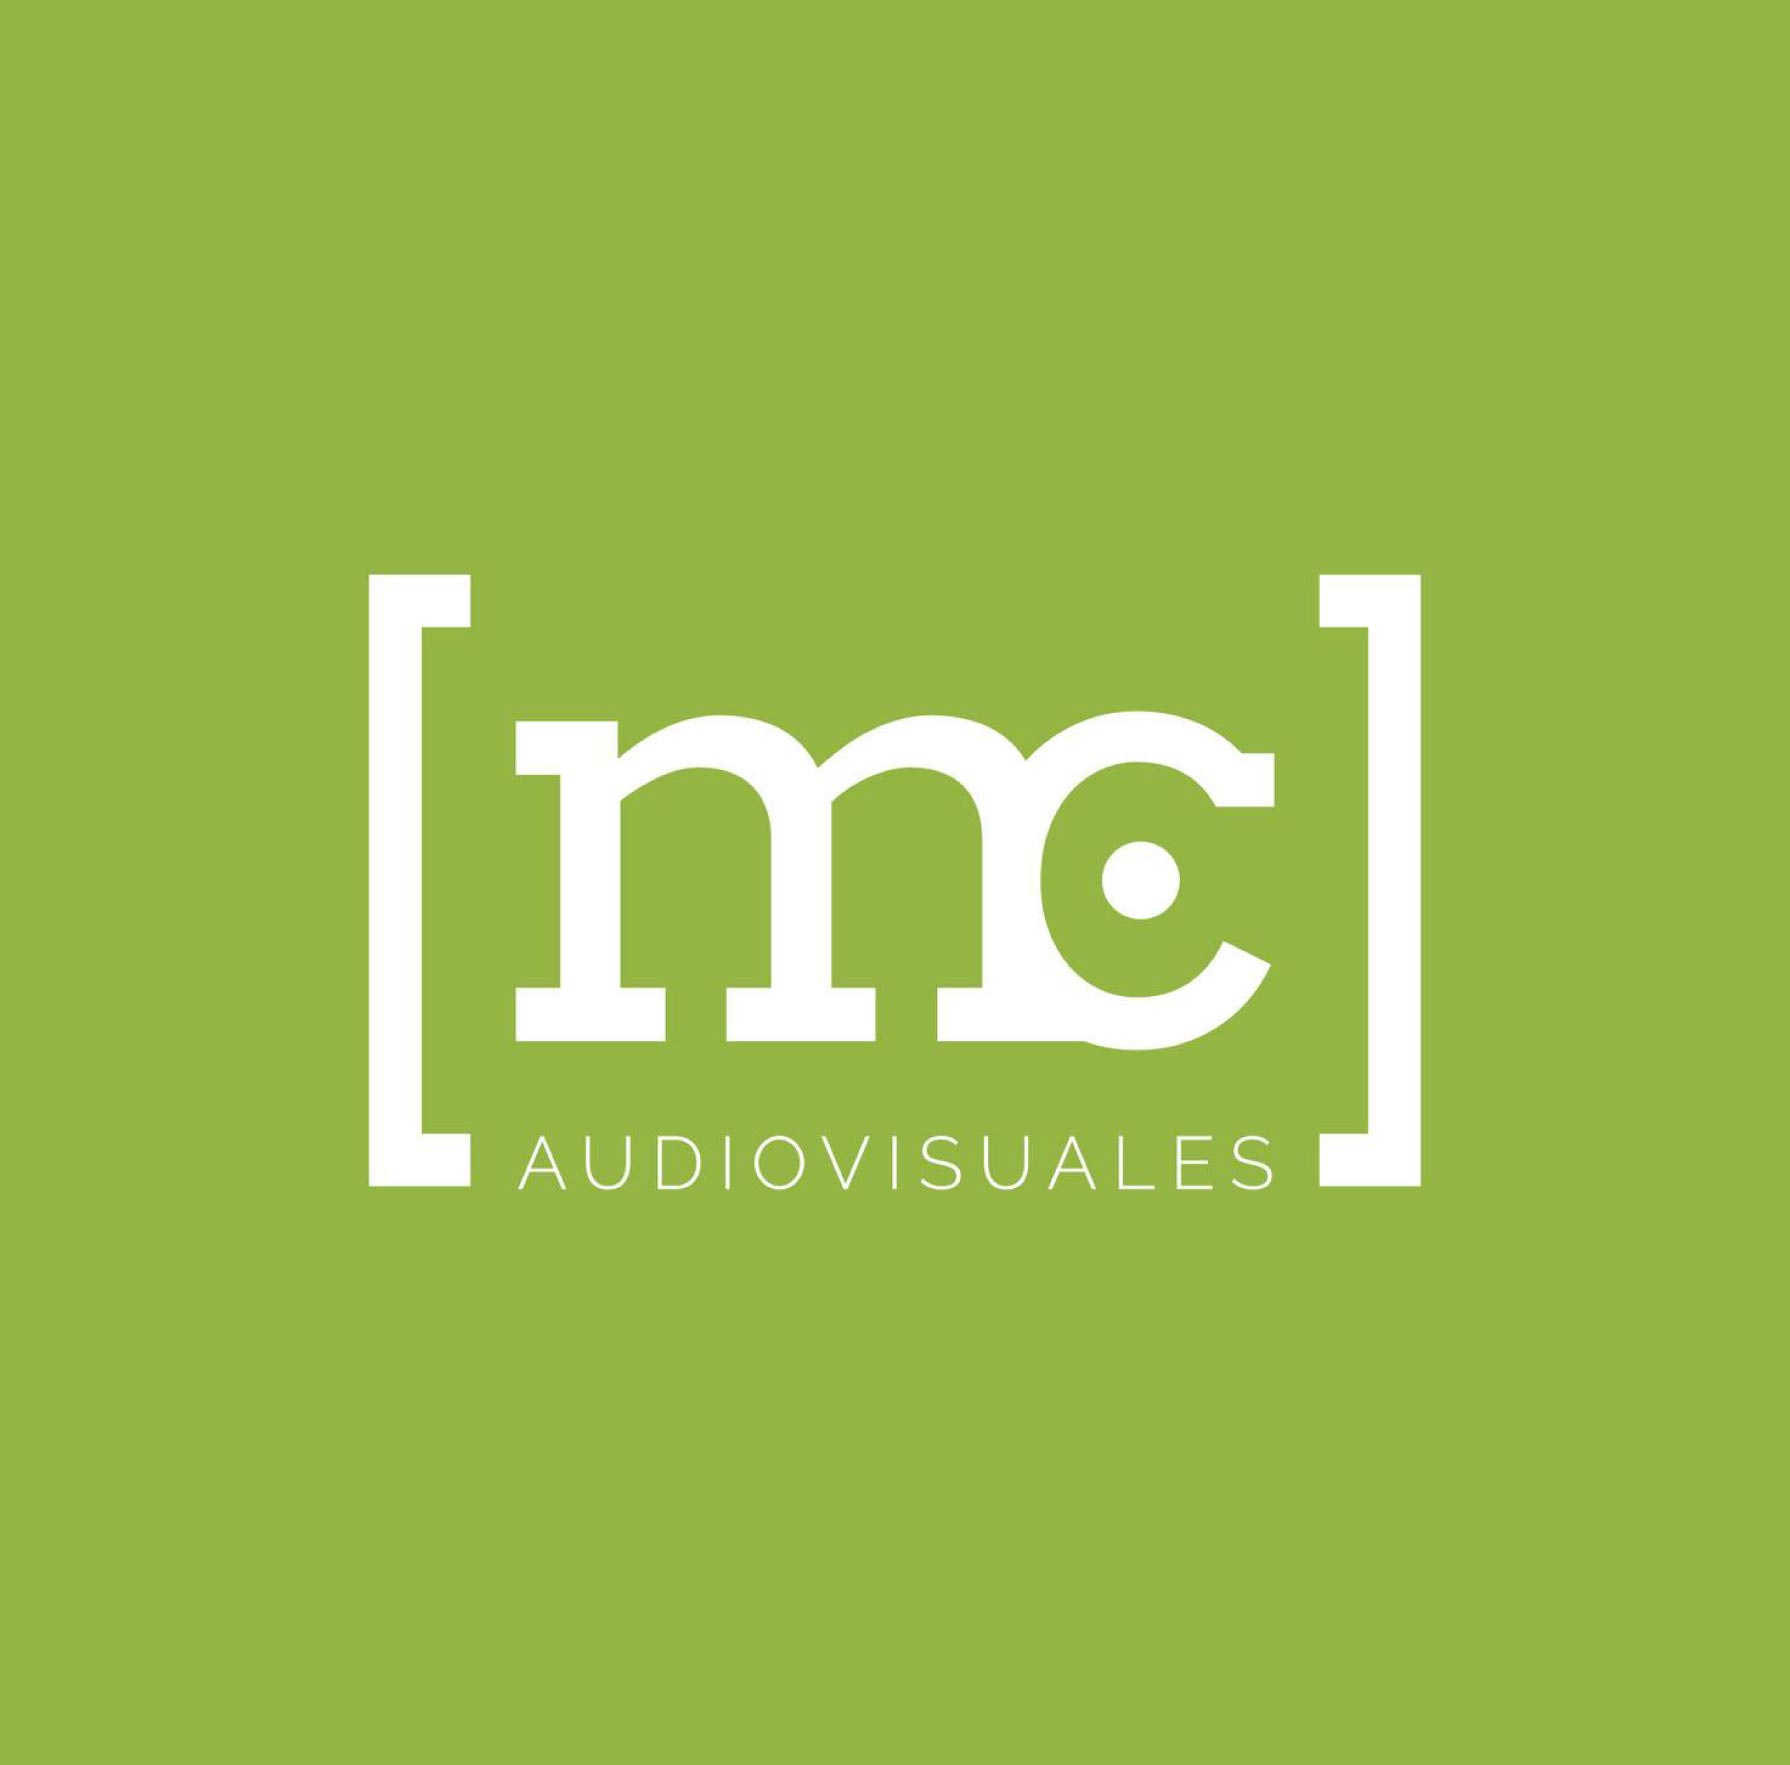 mc-audiovisuales1